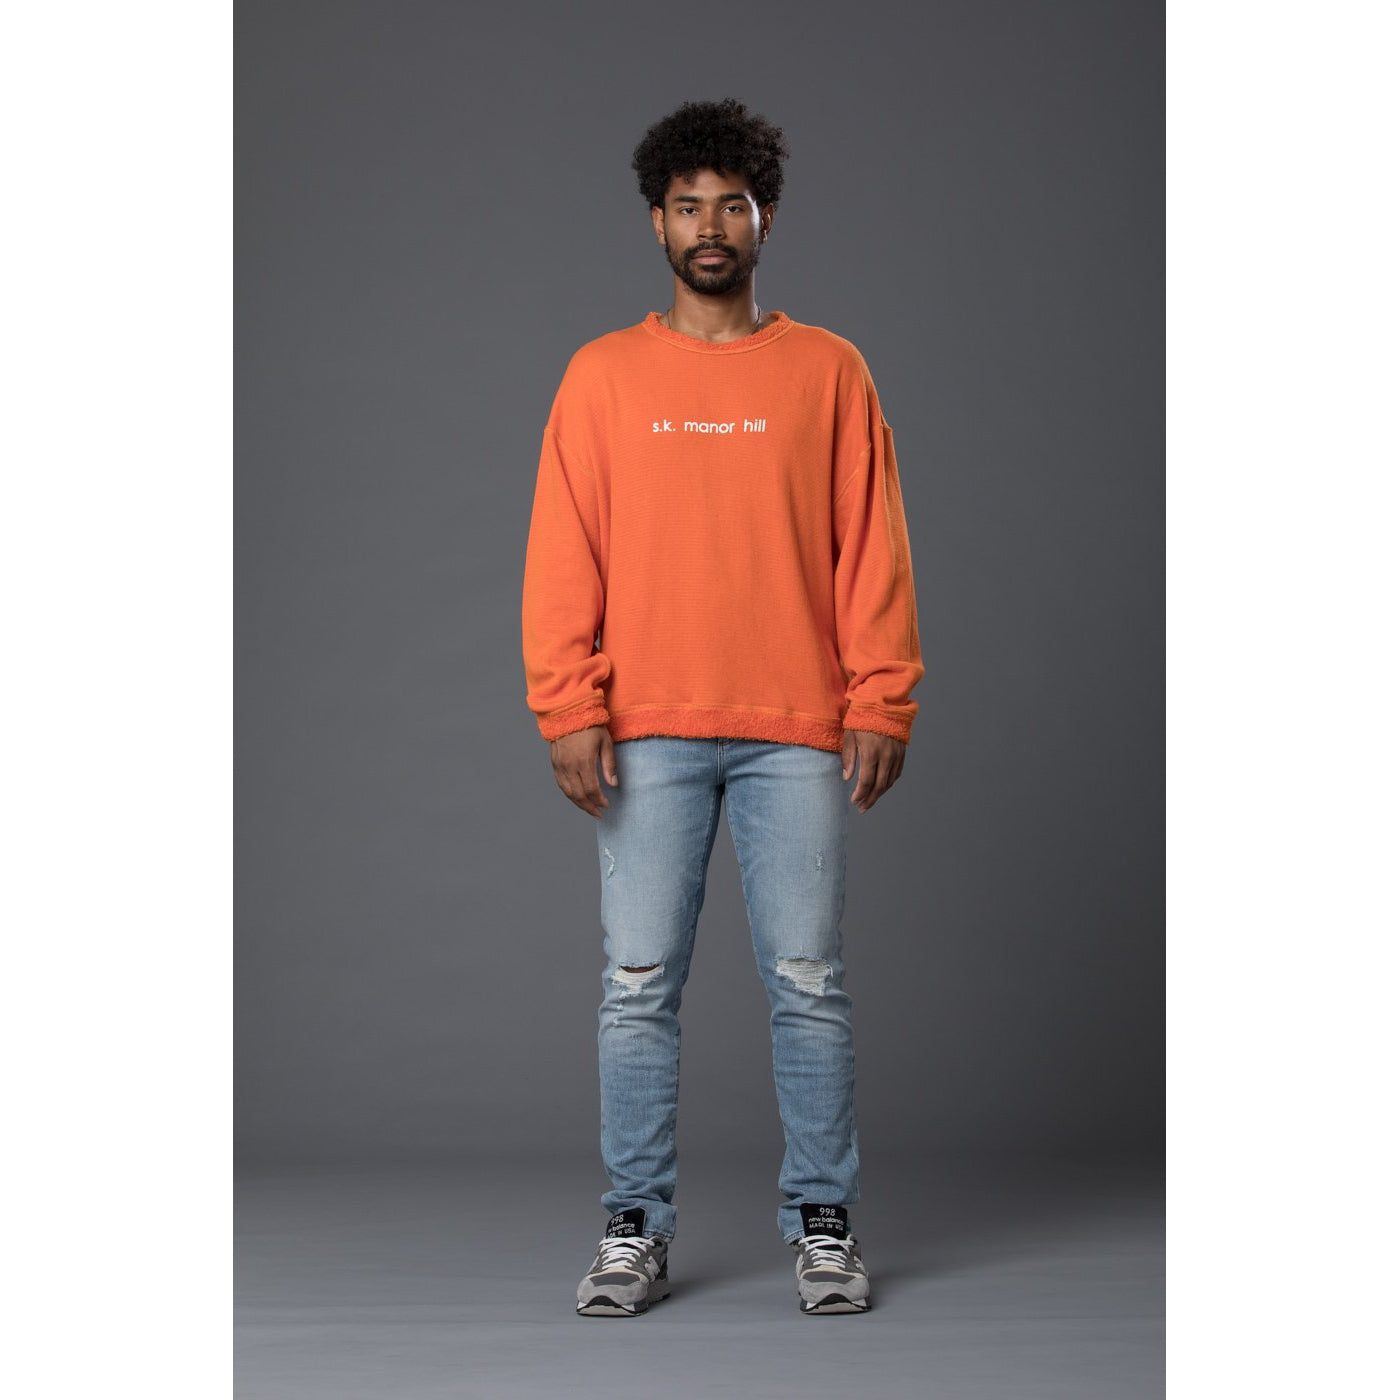 s.k. manor hill Reversible Pile Sweatshirt